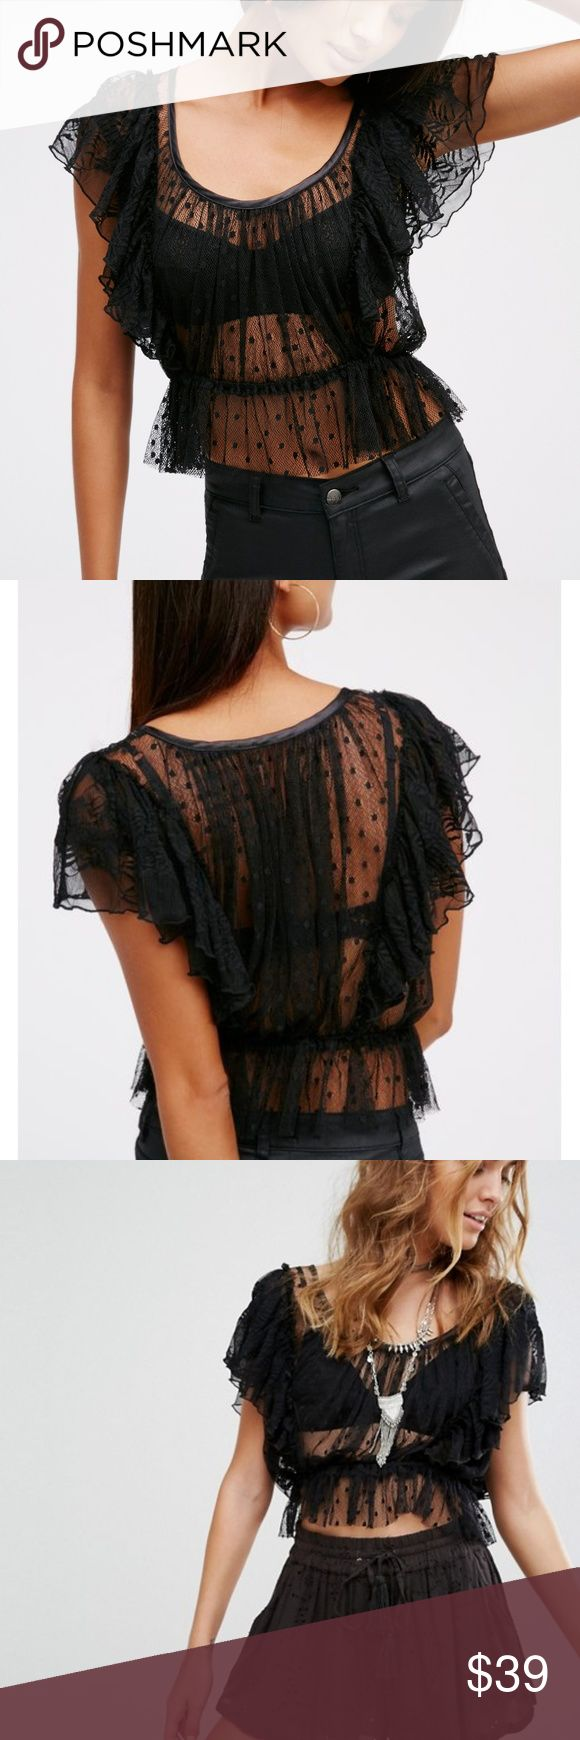 "Free People Sweet Surprise Top The sweetest sheer top featuring a mesh fabrication with a lacey design and darling dots throughout. Femme ruffles along the sleeves and a silky trim along the scooped neckline. Elastic at the waist for a defined silhouette.  In excellent condition. Fits true to size- Length is 16"". No trades, please! Offers welcome. Free People Tops Blouses"